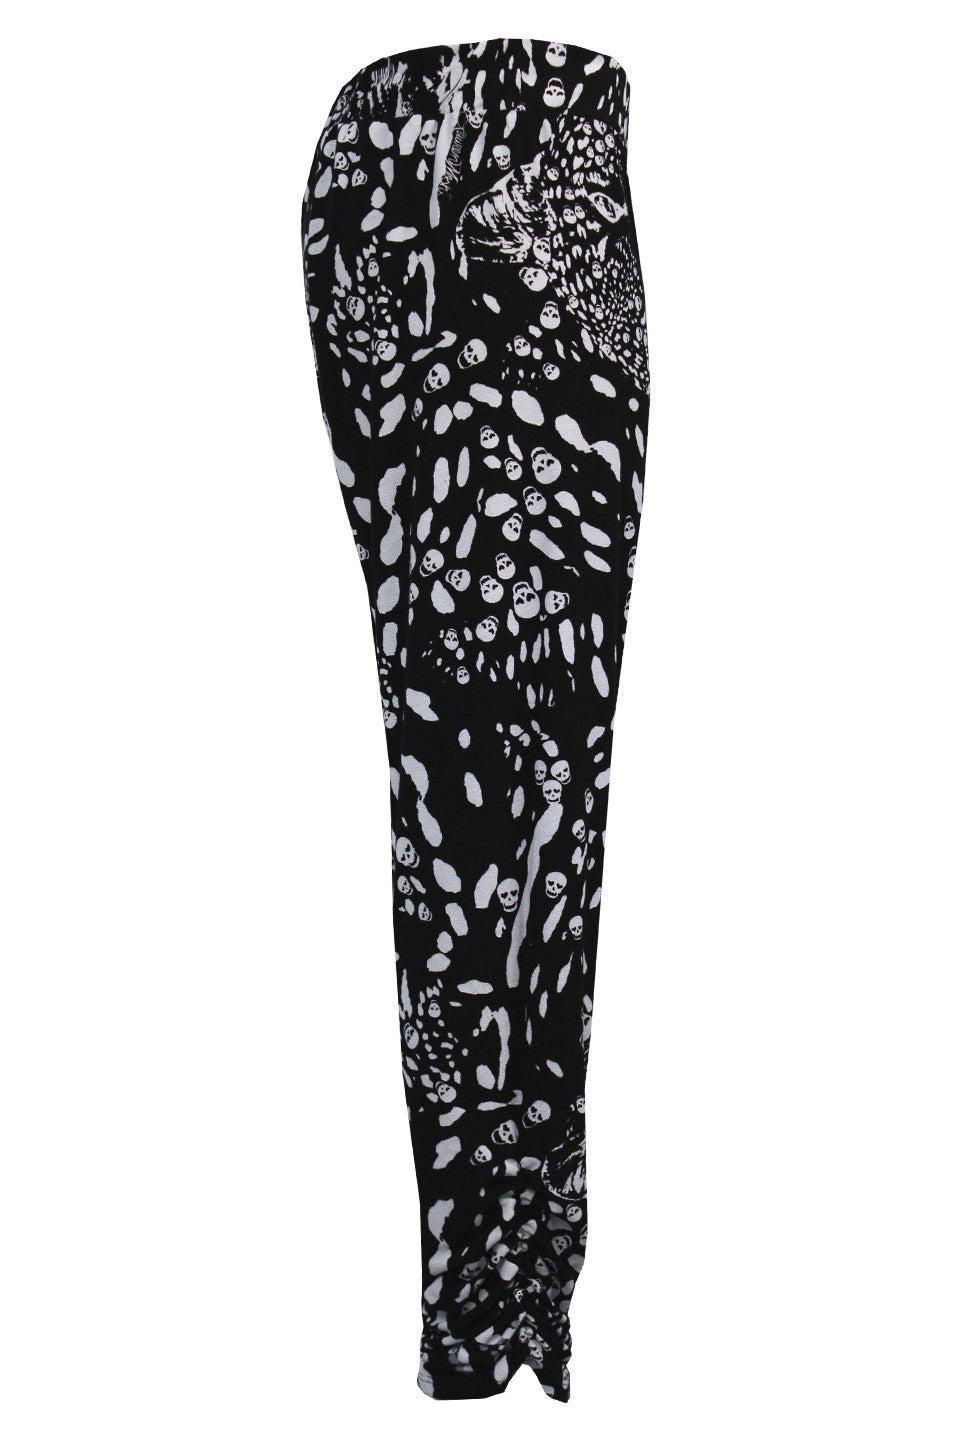 Mimi Leopard Print Pant with Sheering FINAL SALE - Lauren Moshi - 3